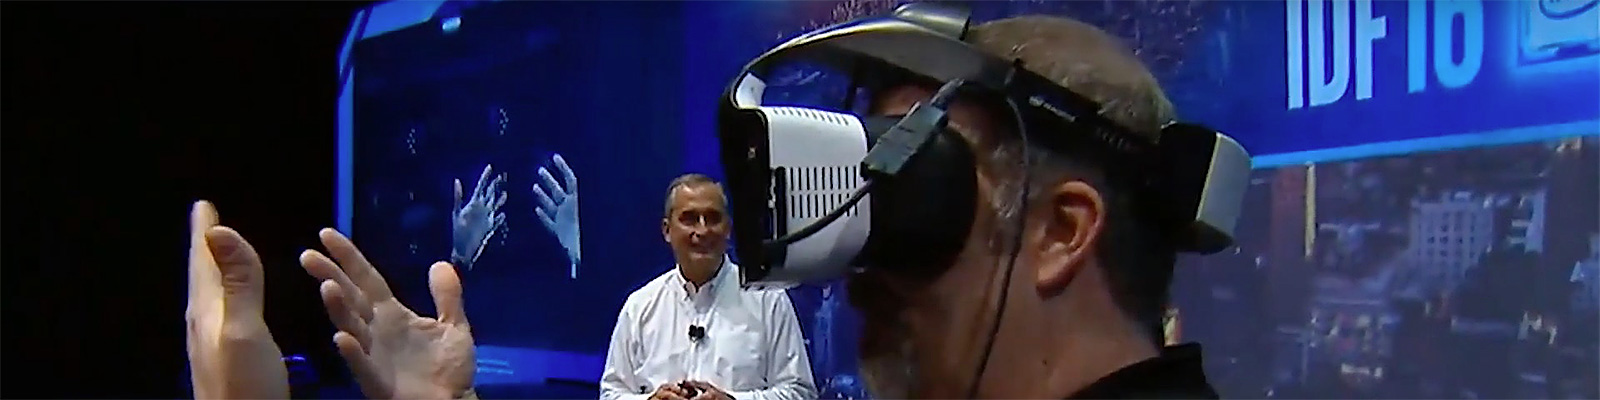 Intel announces untethered VR with Project Alloy(CNET)